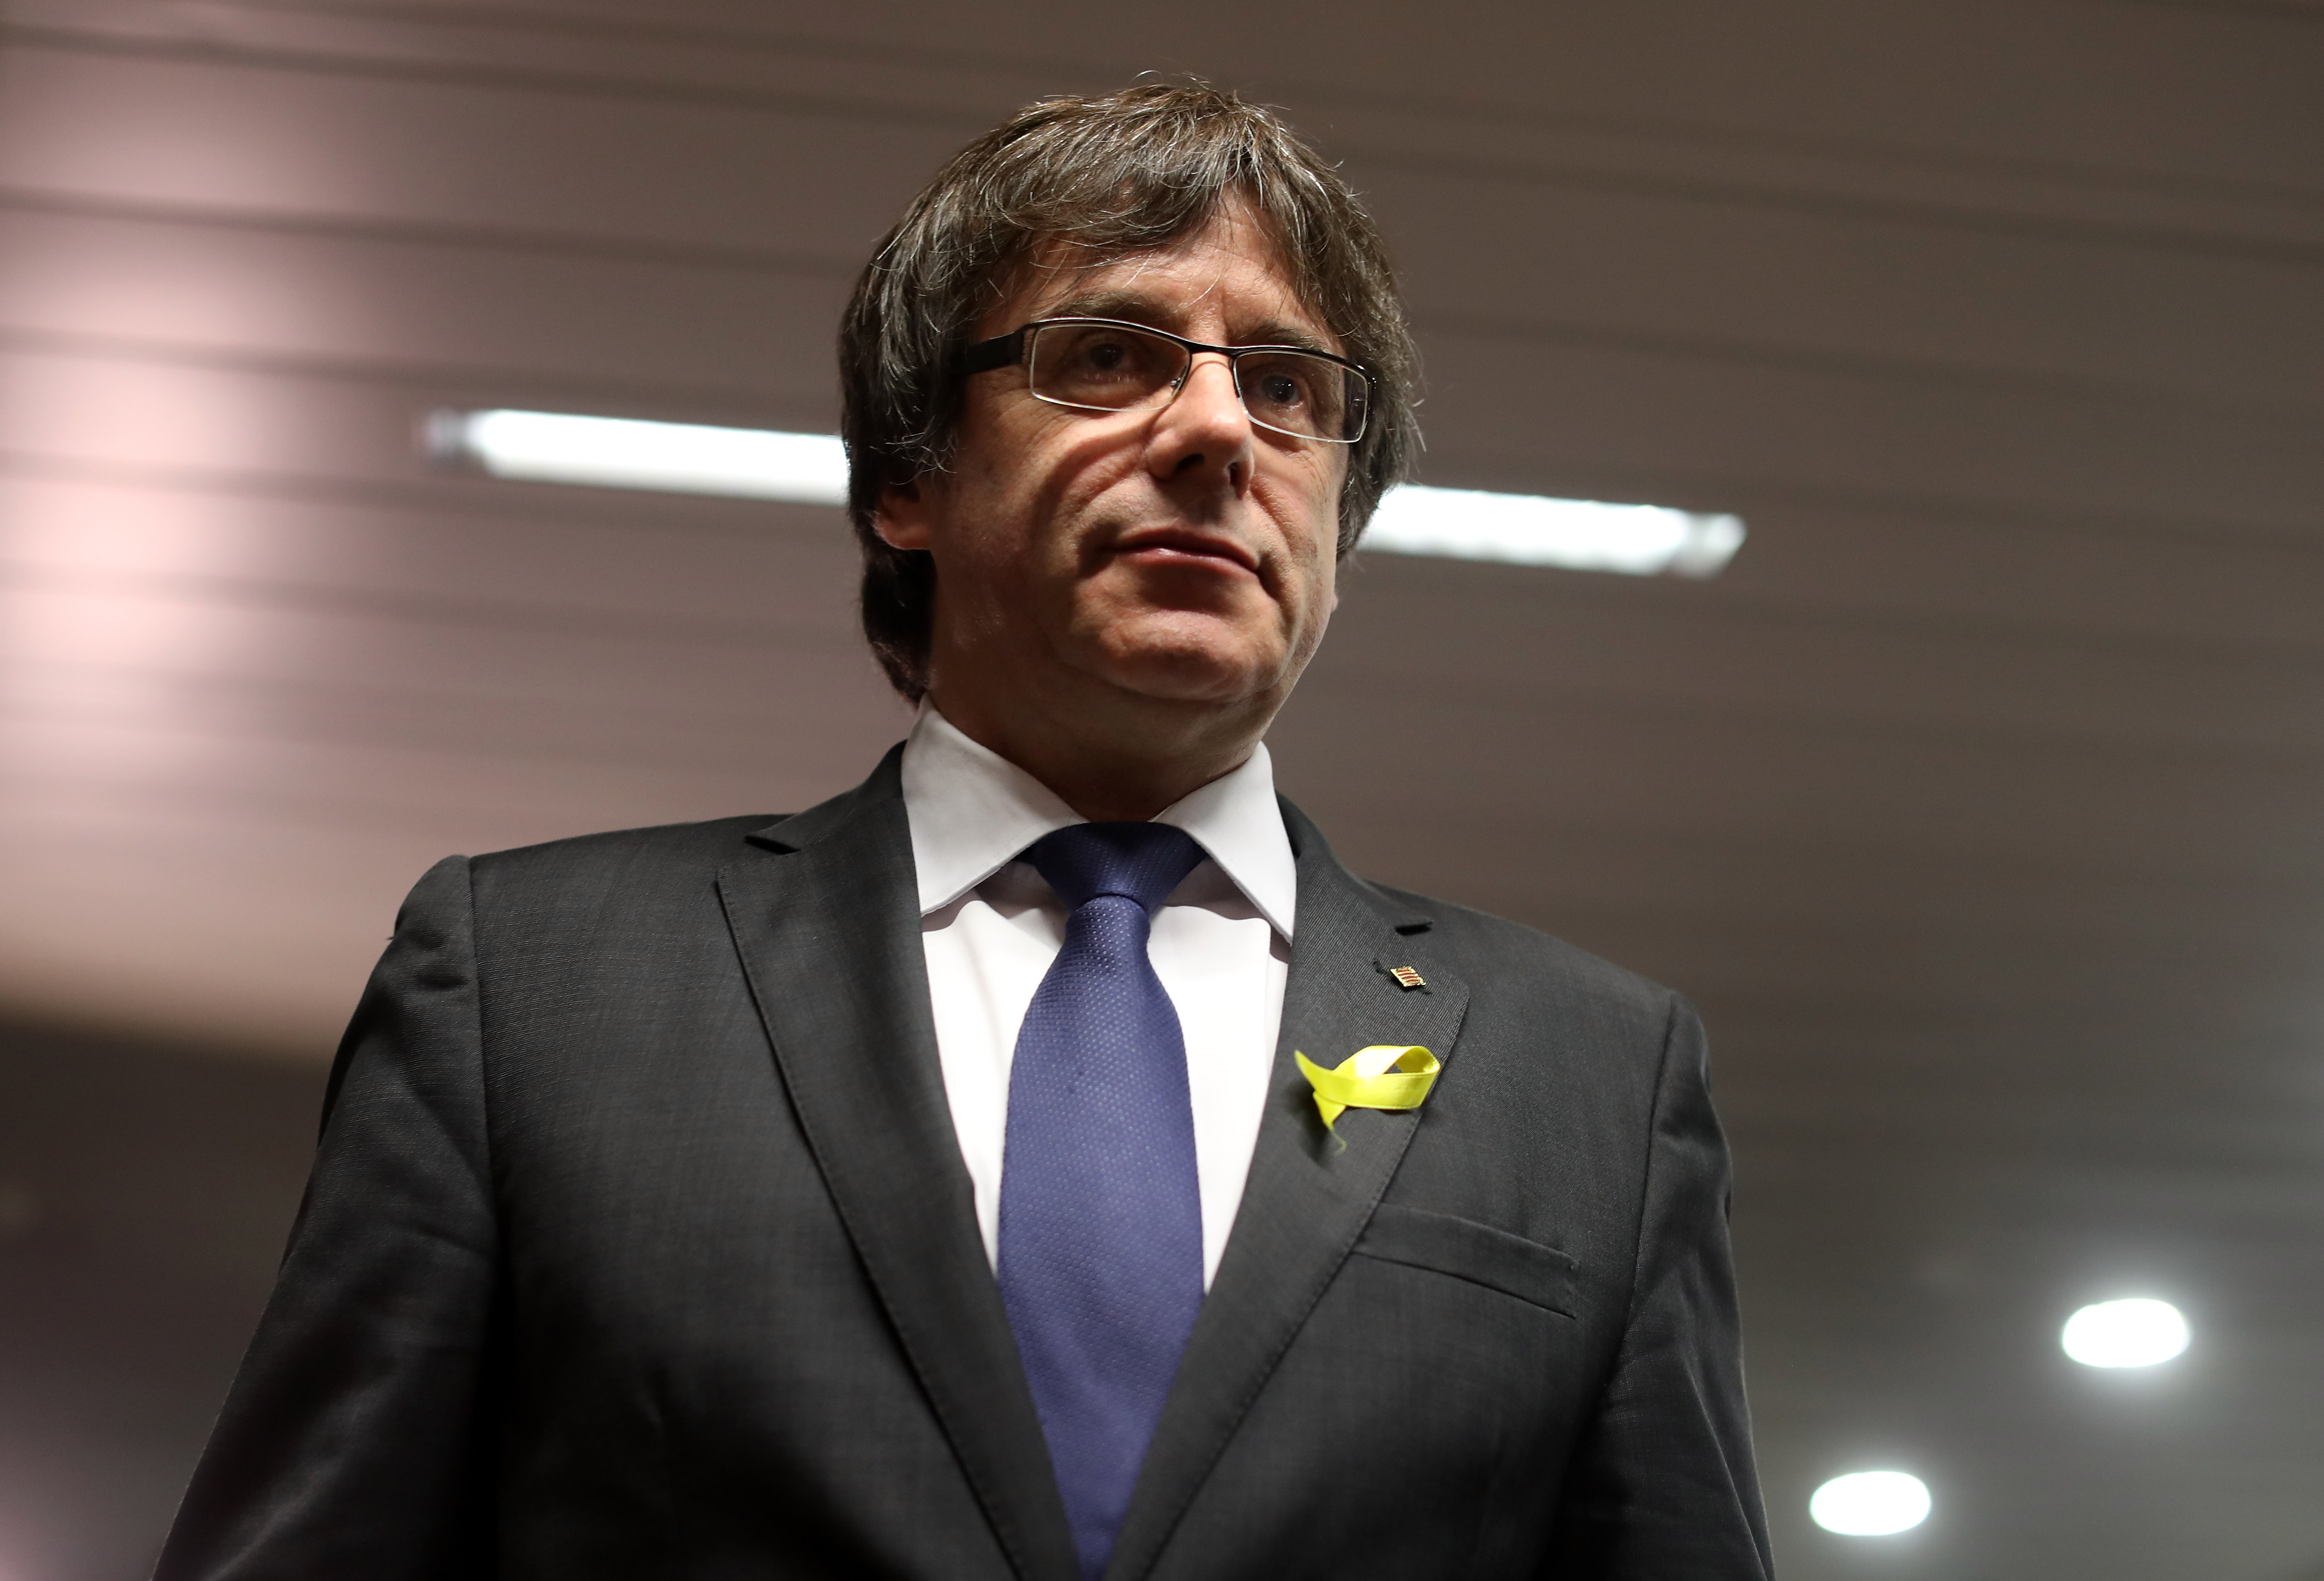 Ousted Catalan leader Carles Puigdemont attends a press conference at Brussels press club on Dec. 22, 2017 in Brussels, Belgium